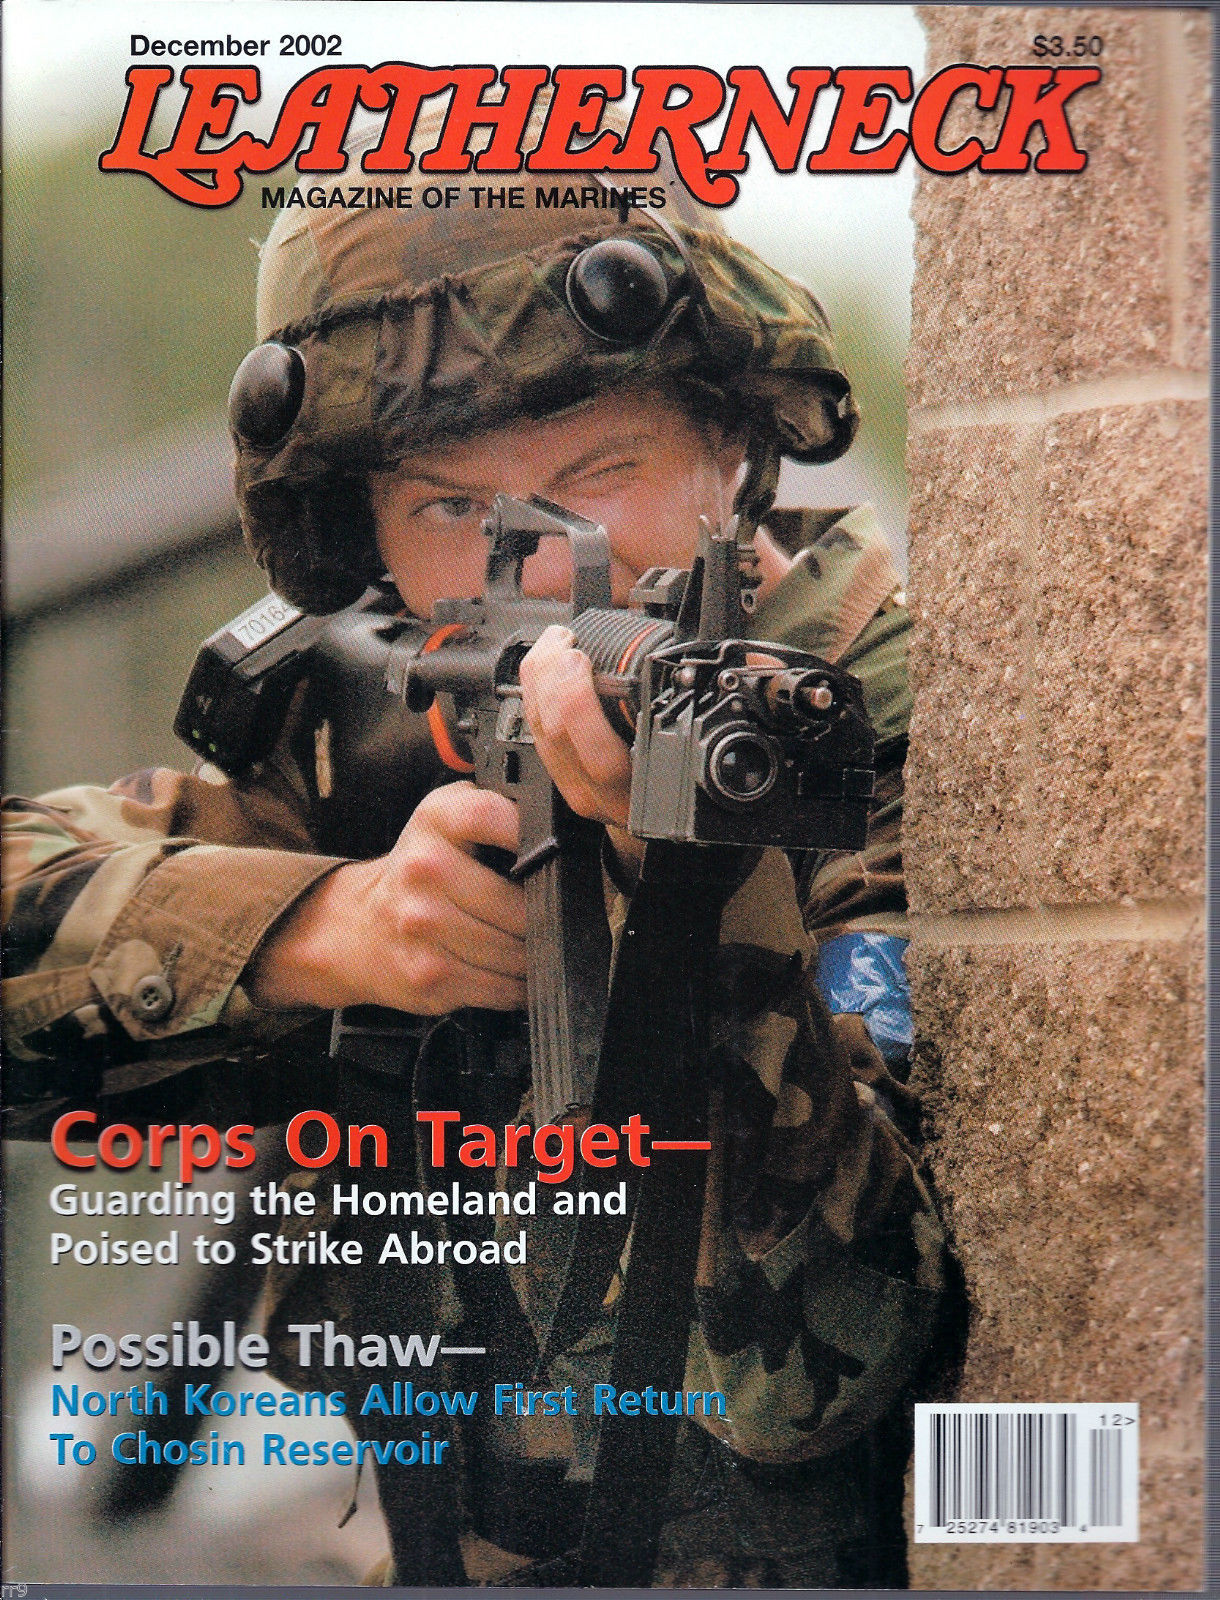 Primary image for Leatherneck Magazine of the Marines December 2002 Corps on Target